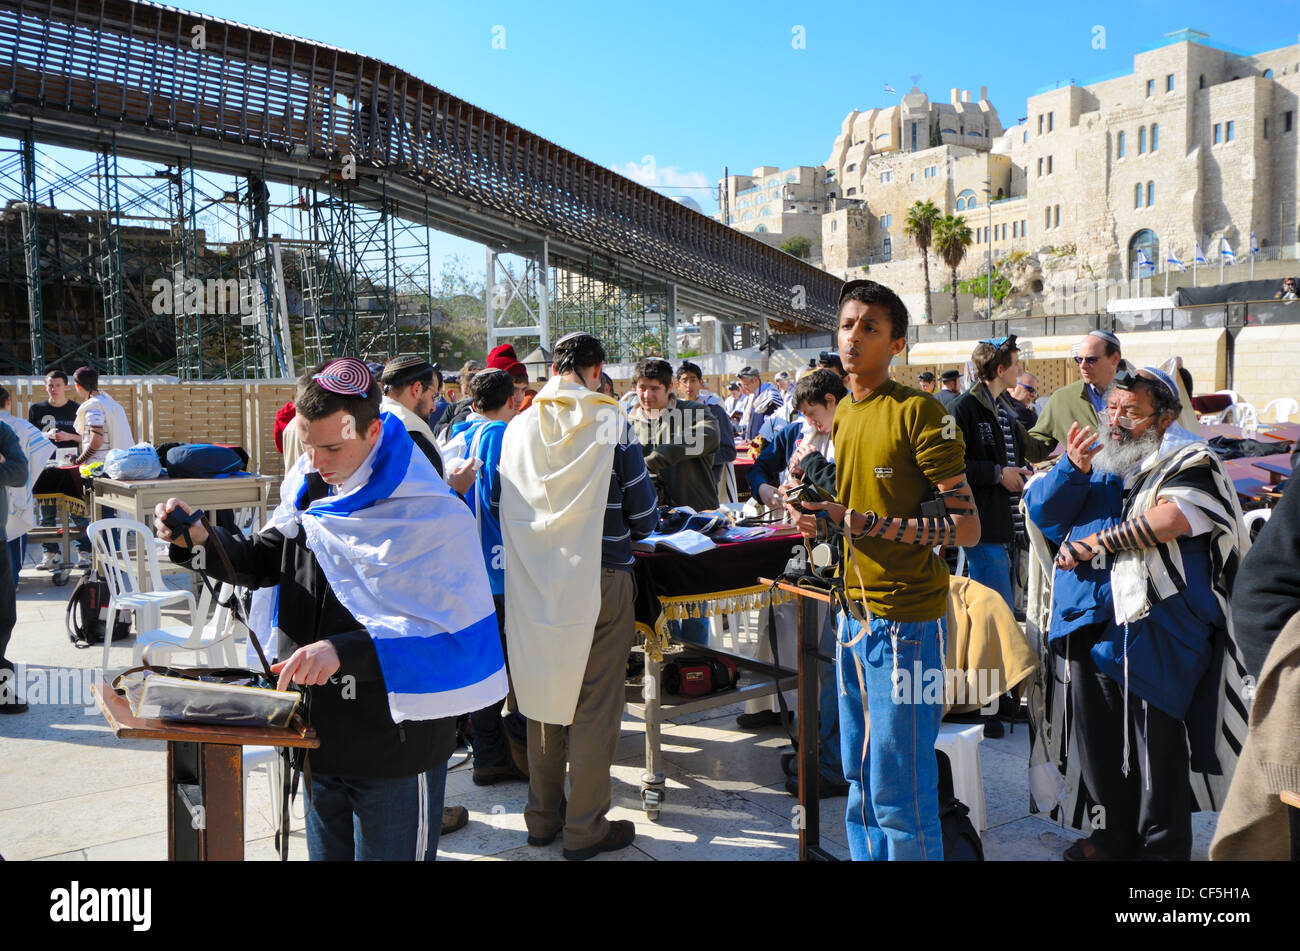 Crowds worship at the Western Wall, the holiest site in Judaism outside the Temple Mount itself in Jerusalem, Israel. - Stock Image